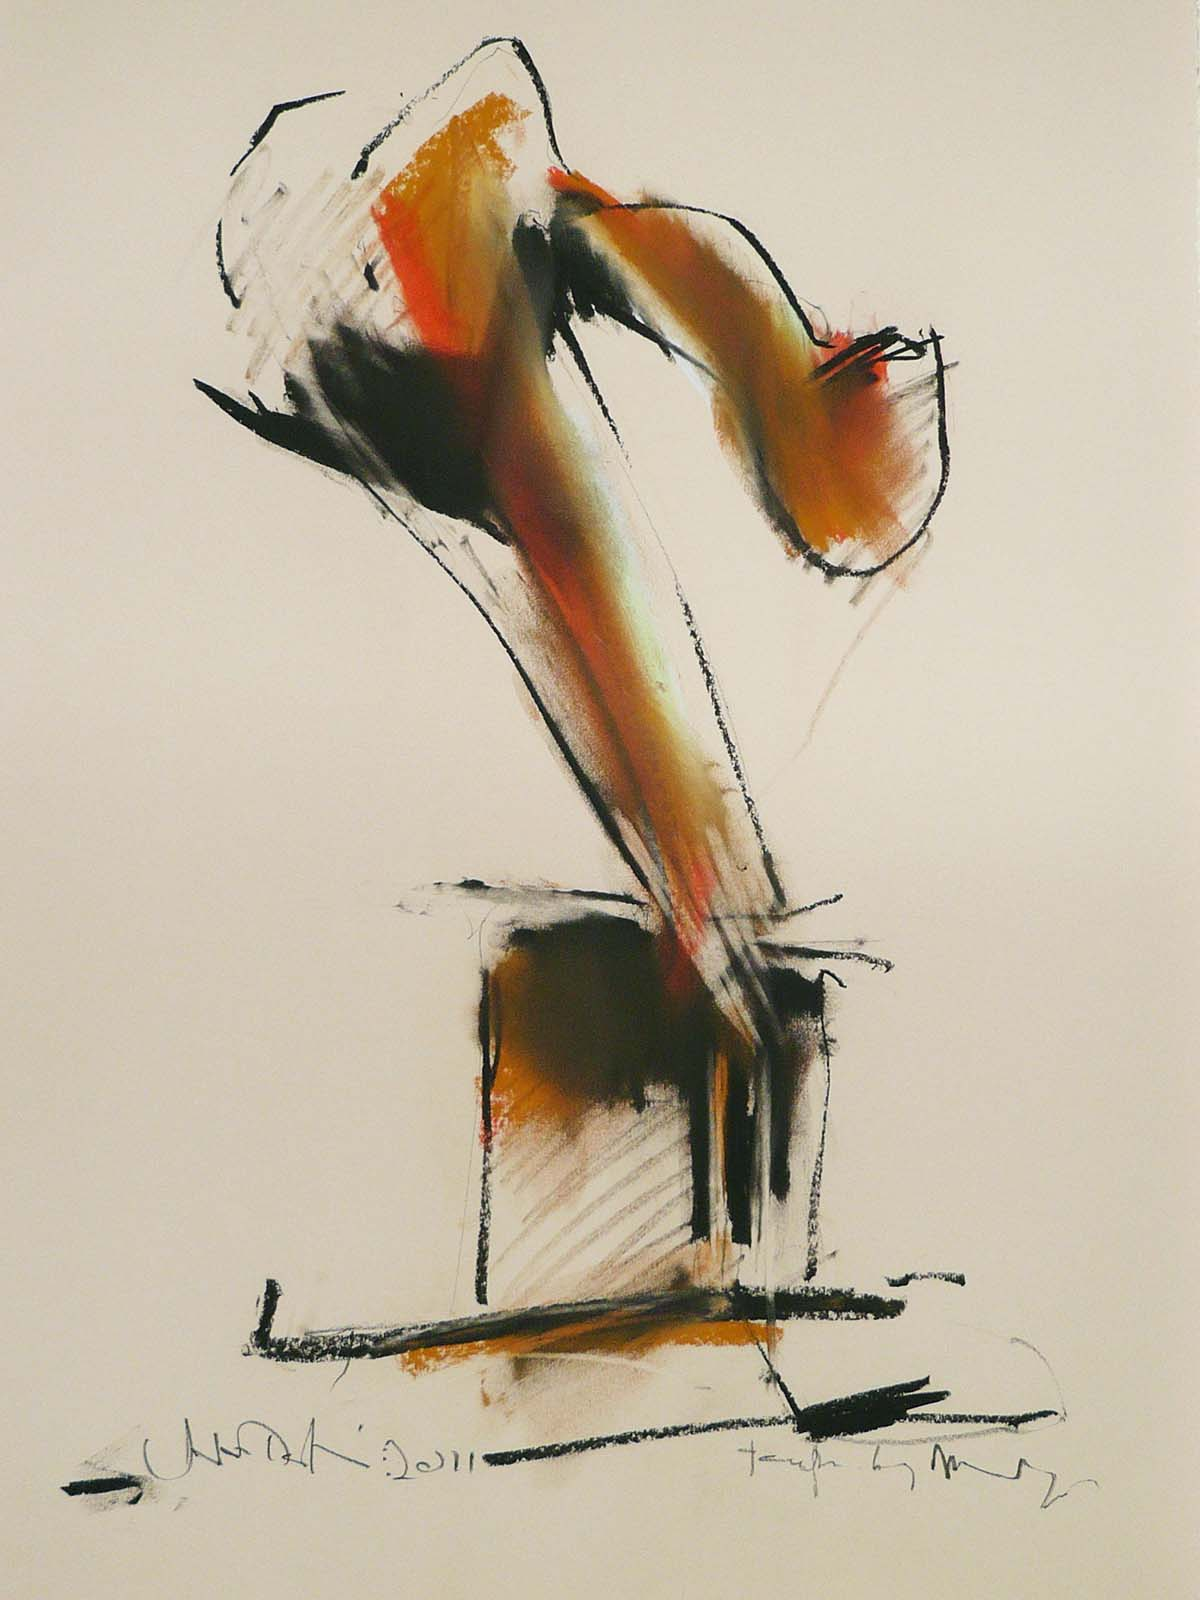 Van Alstine-John_Tempered by Memory13 orange_Charcoal on Paper_30x22